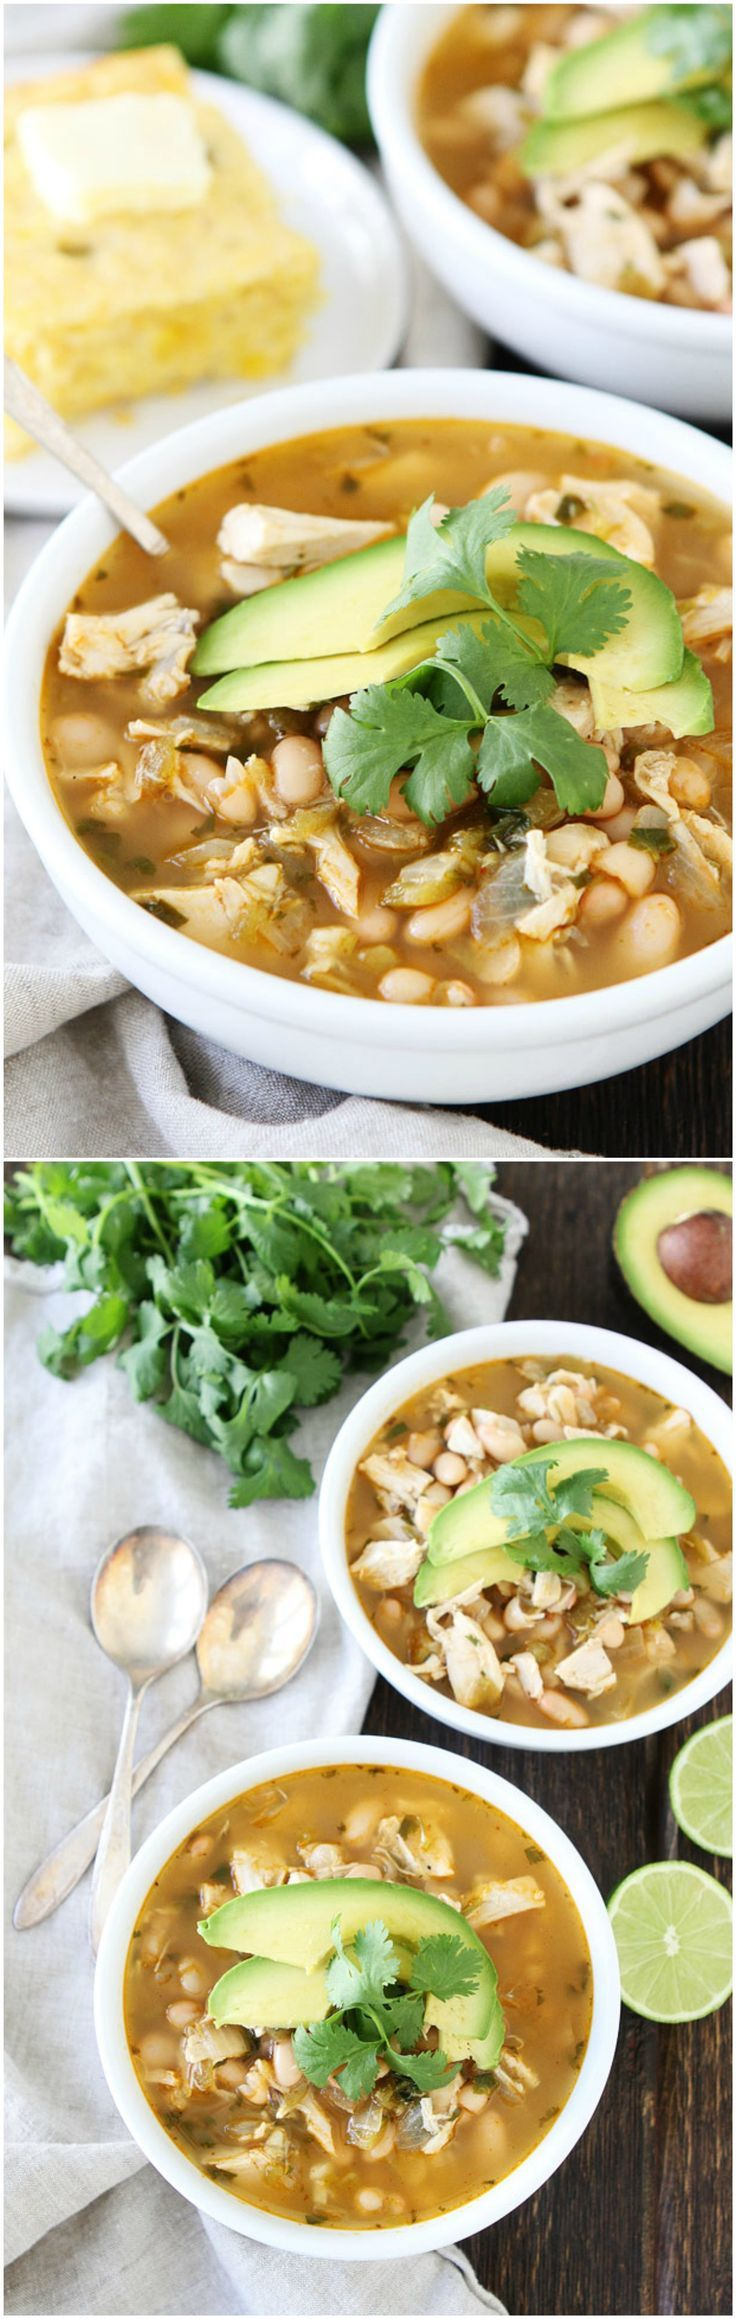 Easy White Chicken Chili Recipe on http://twopeasandtheirpod.com You can have this comforting and delicious chili on the dinner table in 30 minutes!